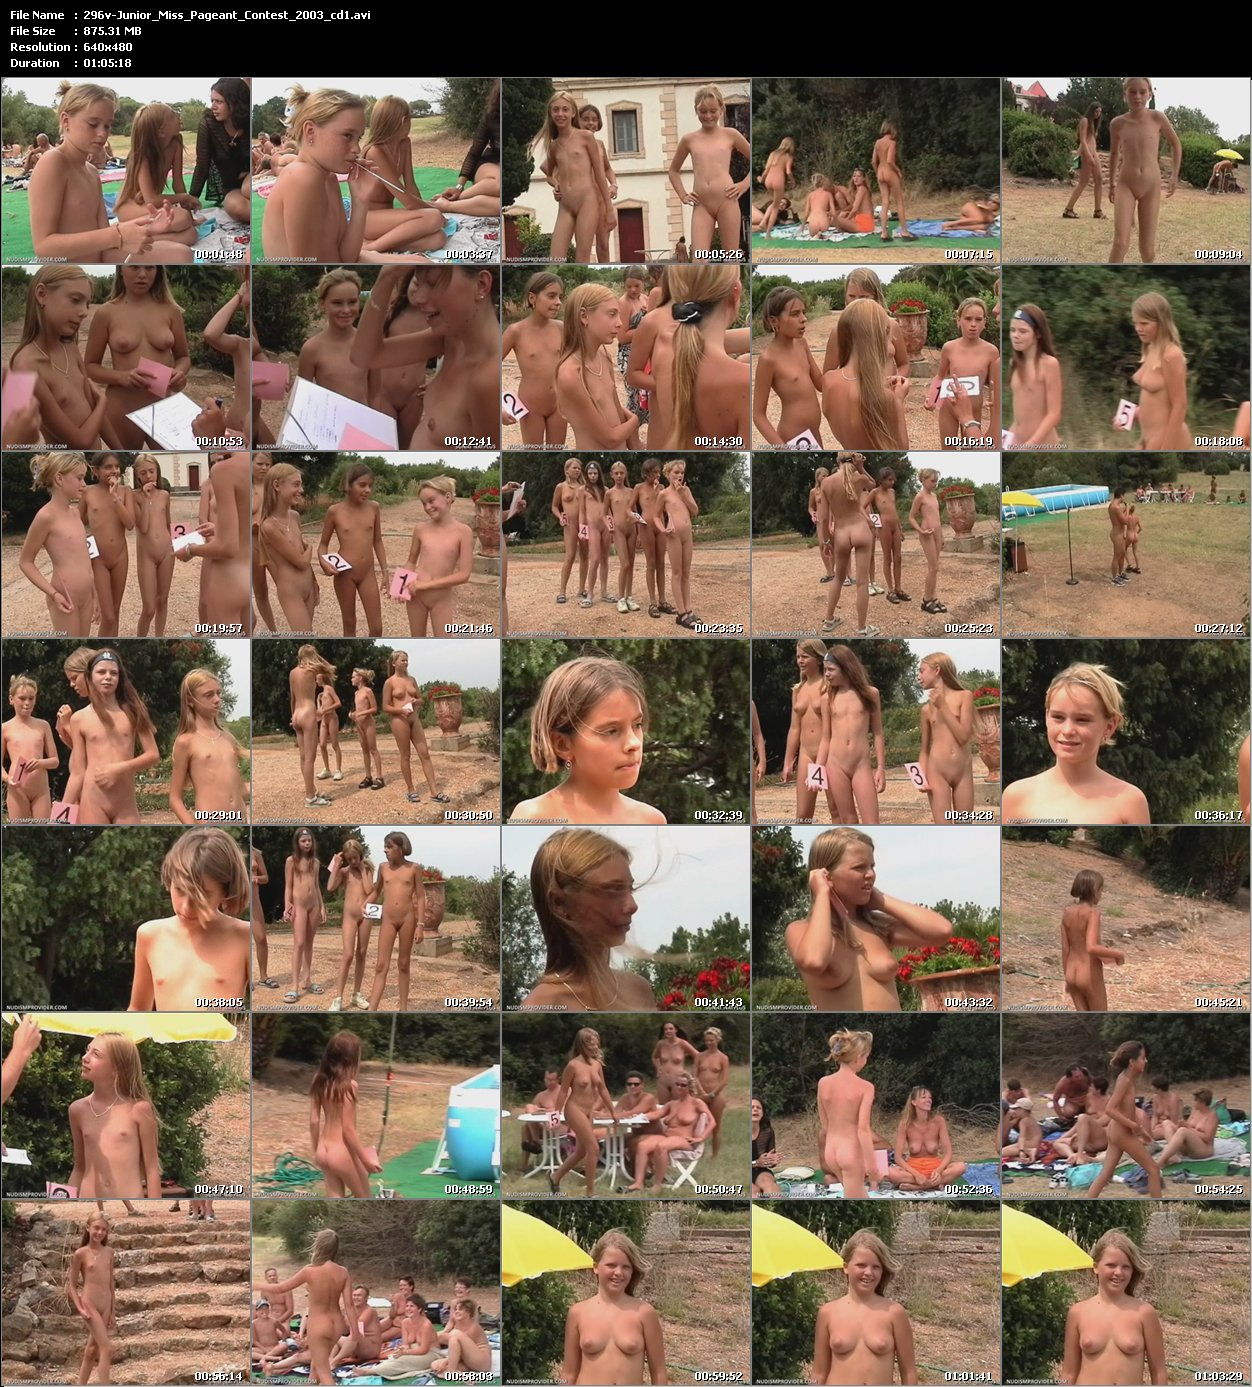 namansite nudism Junior Miss Pageant Contest 2003